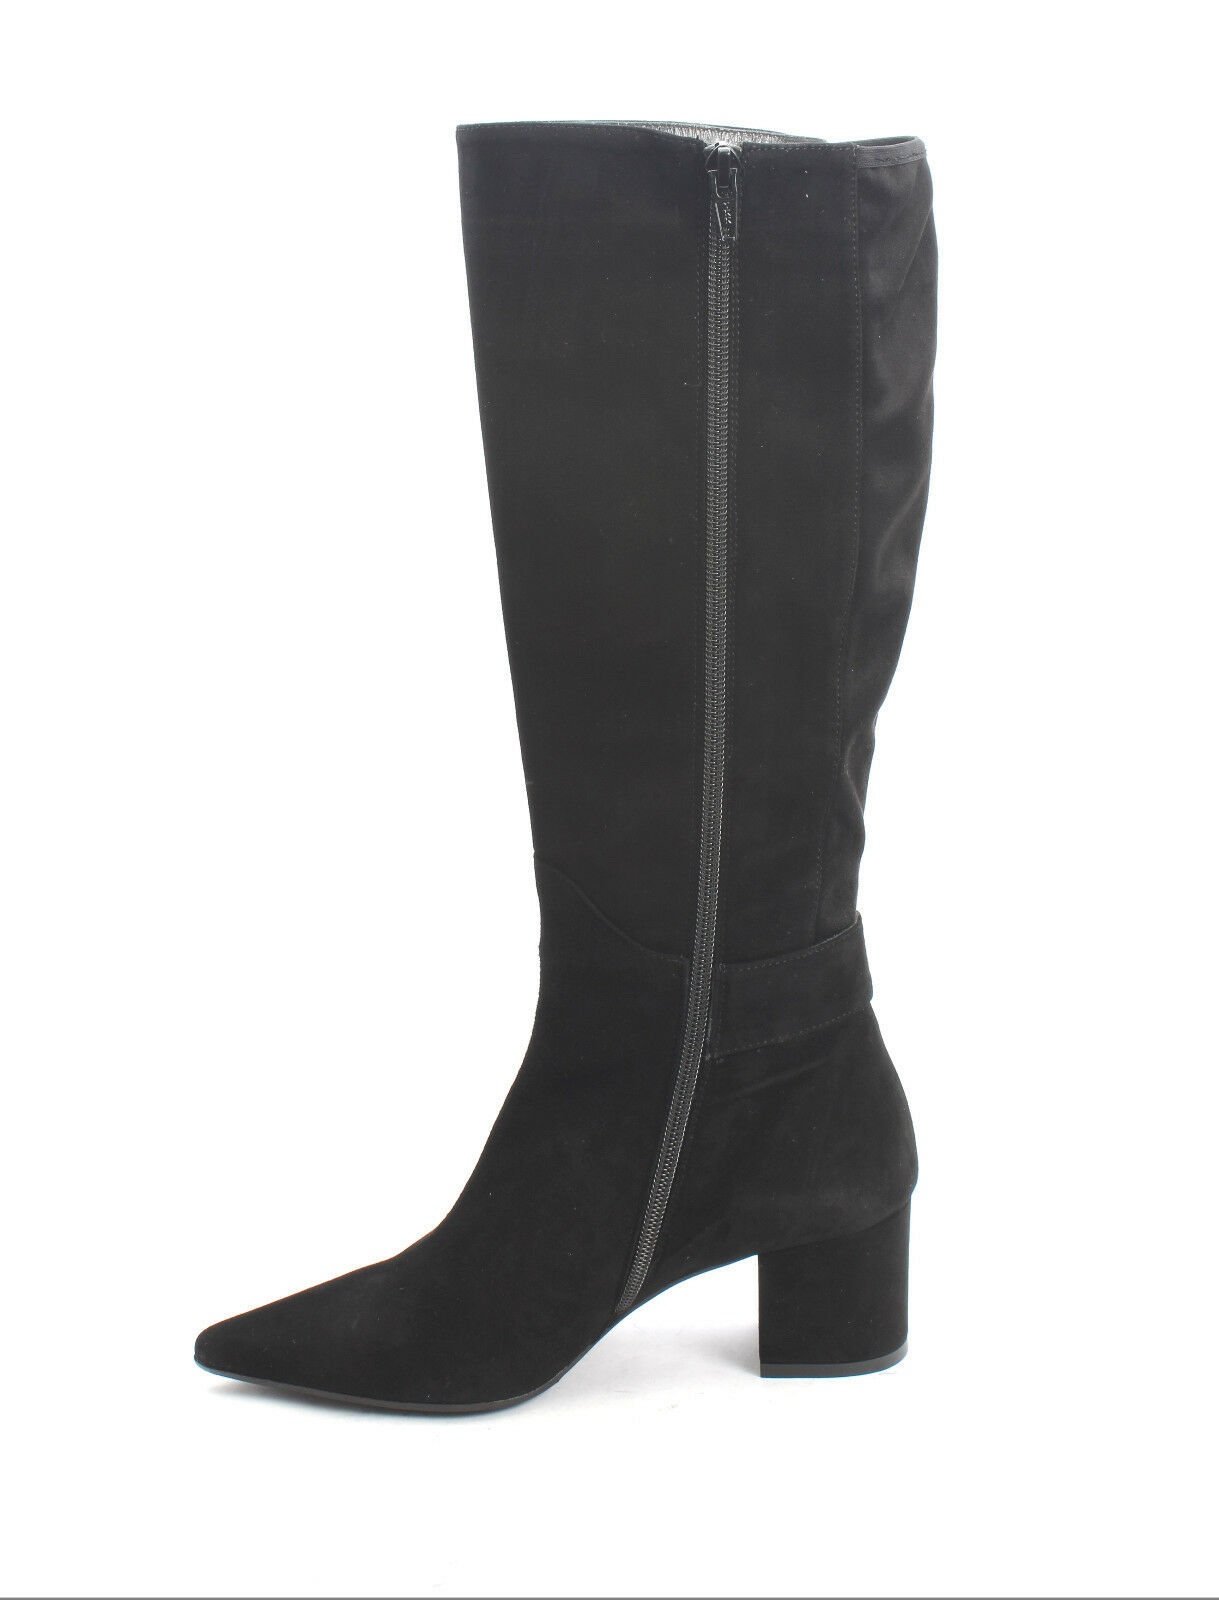 Isabelle 629 Black Suede     Stretch Suede Zip Pointy Knee High Boot 40   US 10 c0533e